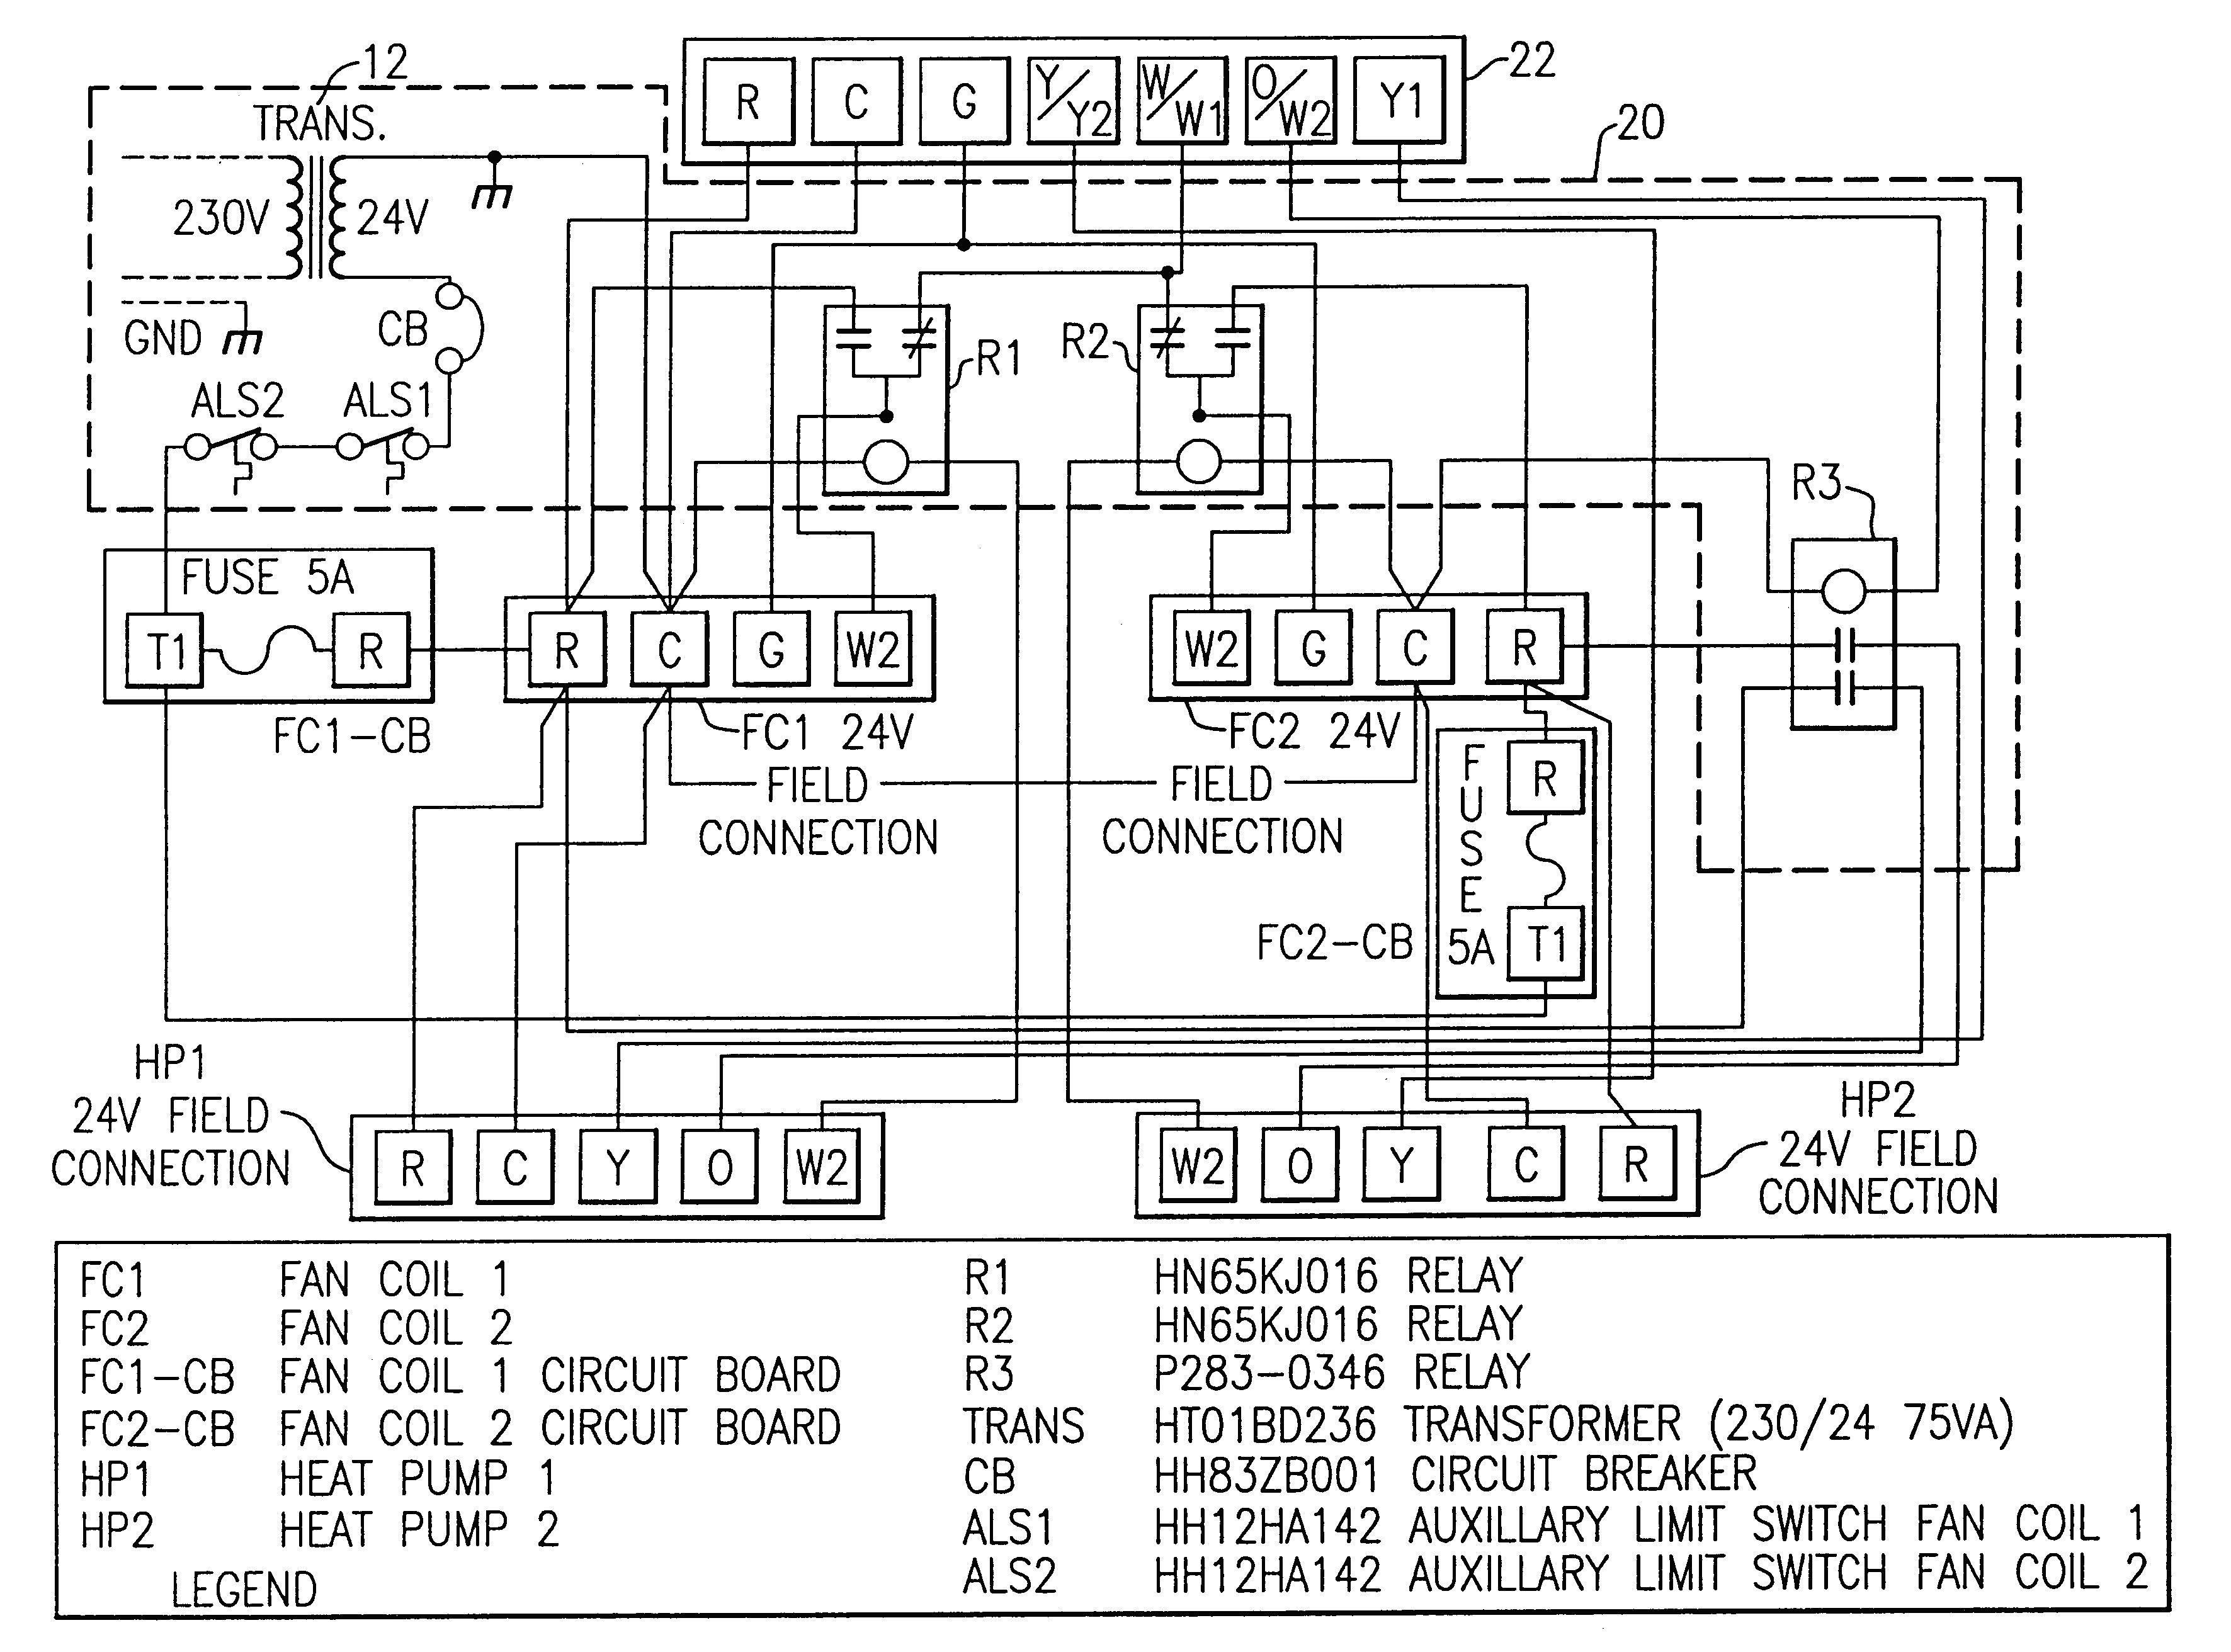 New Aircraft Wiring Diagram Legend Diagramsample